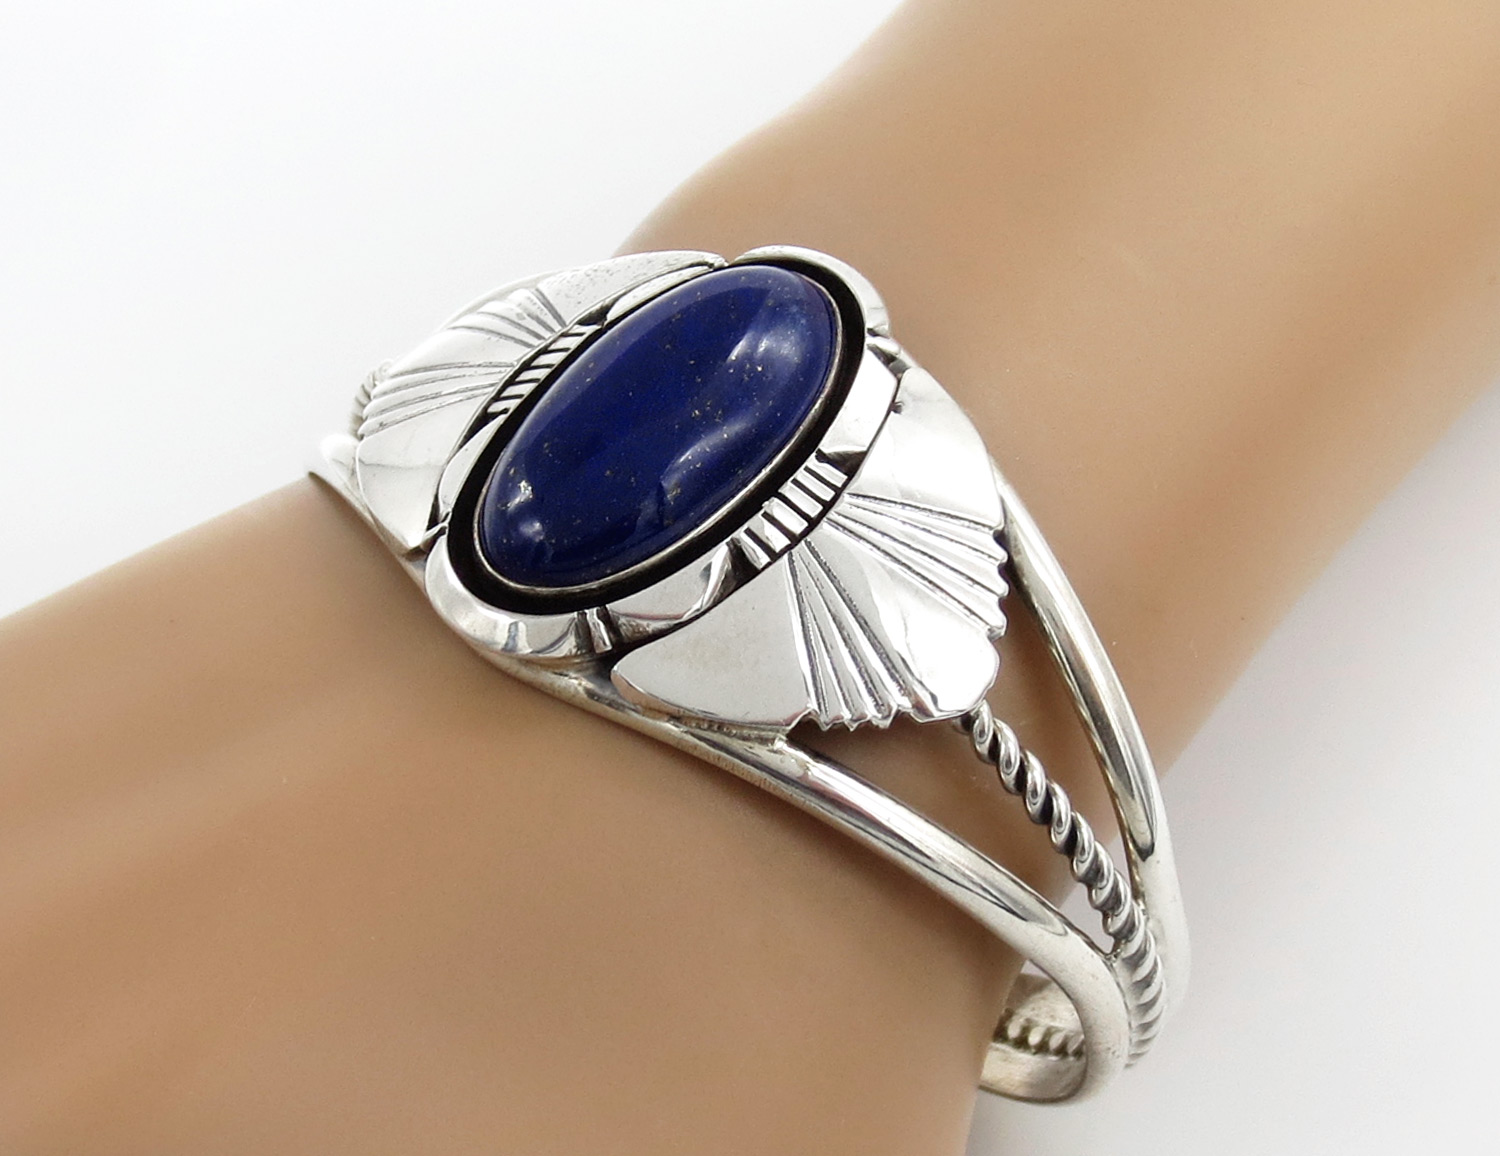 Lapis & Sterling Silver Bracelet Native American Jewelry - 2124dt